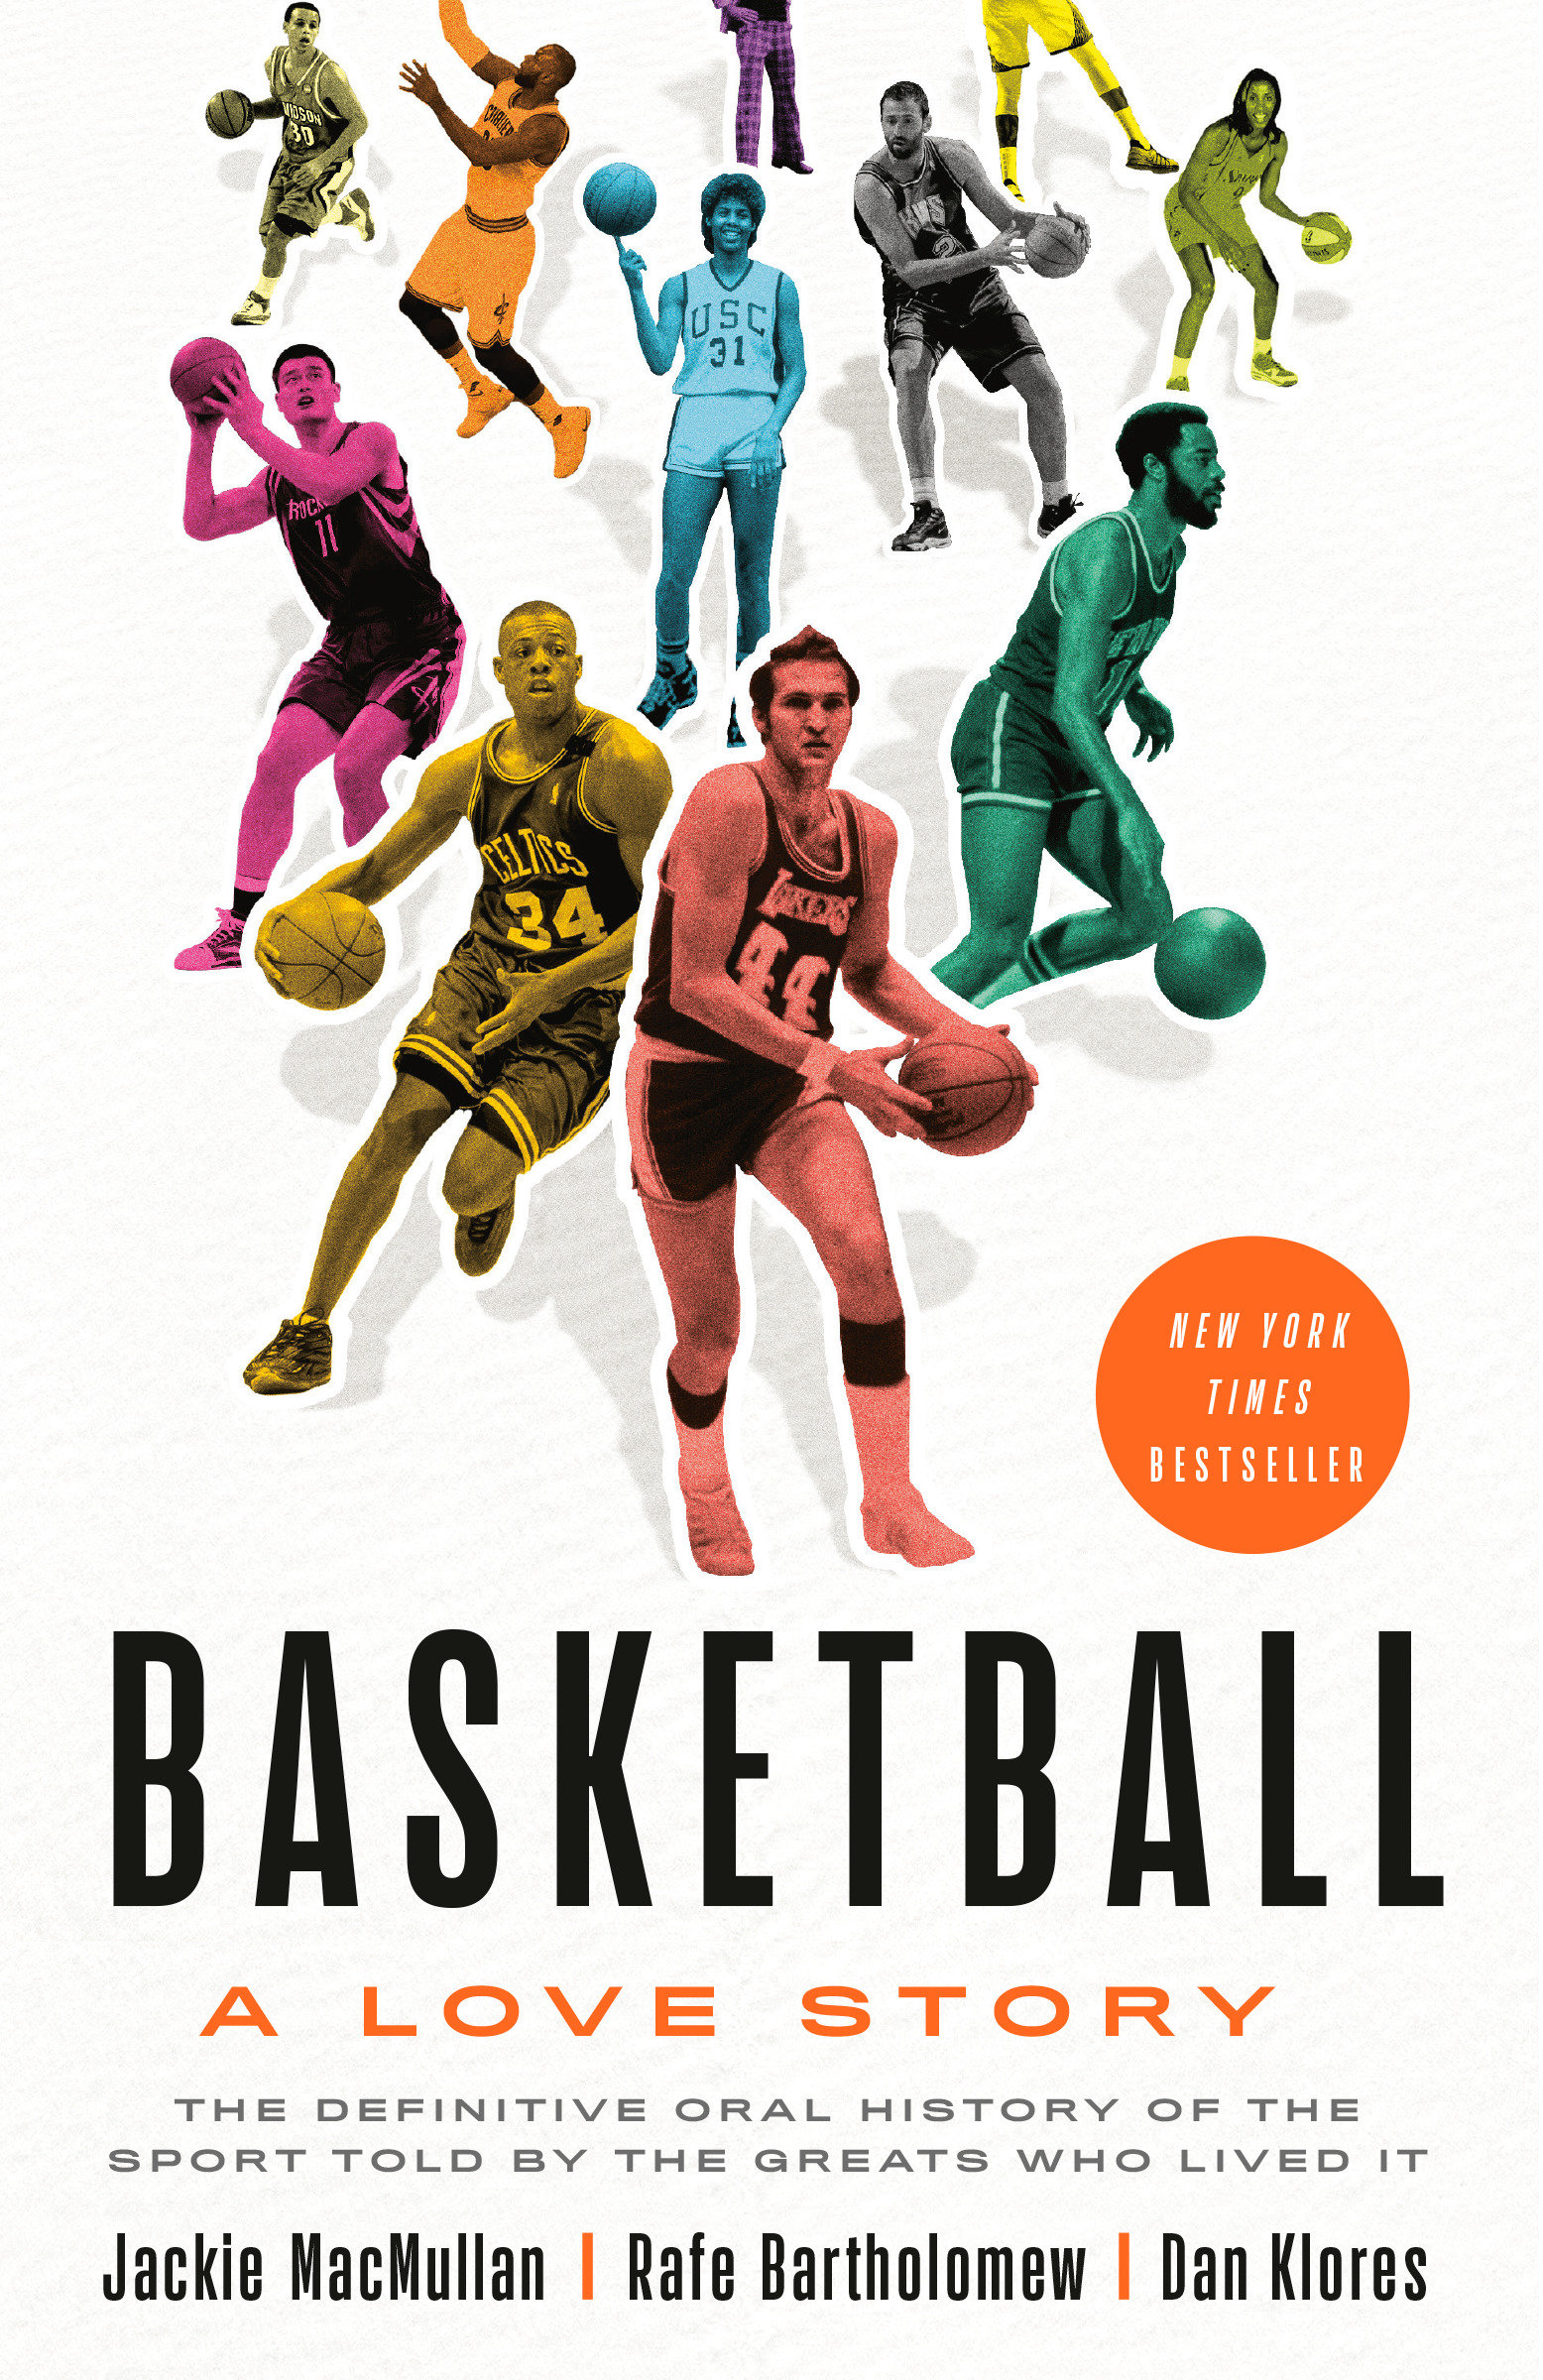 Basketball A Love Story cover image